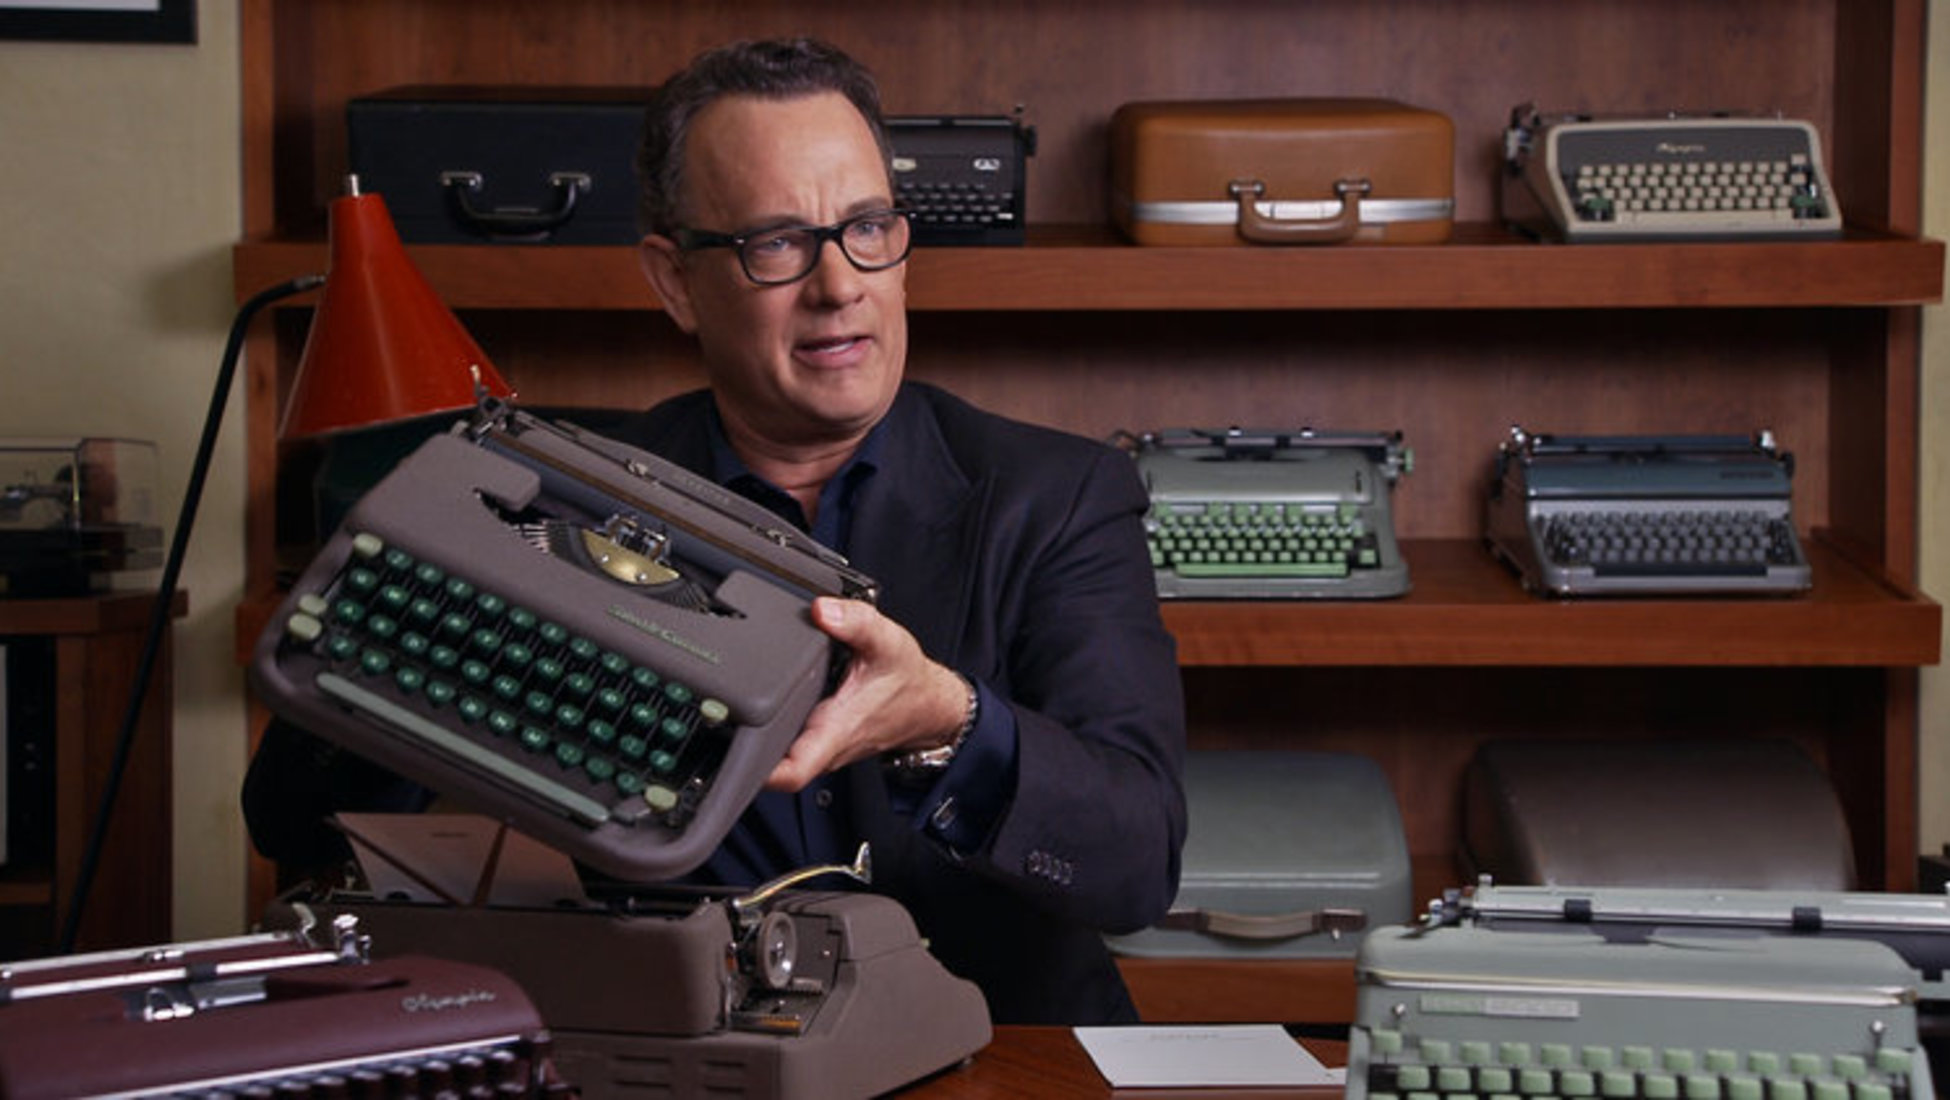 Celebrity Collections: Why Tom Hanks Collects Typewriters